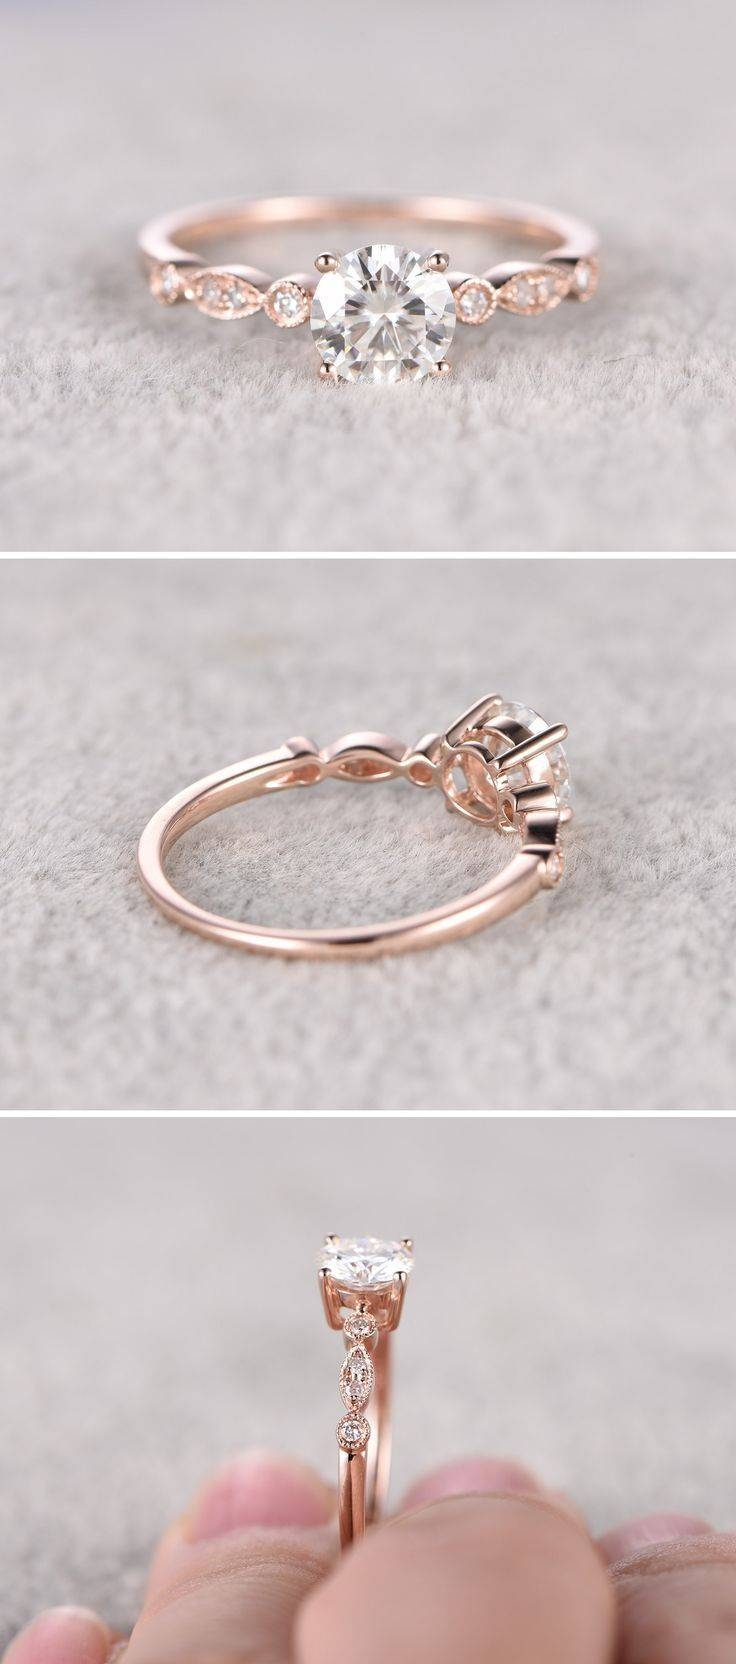 Best 25+ Small Engagement Rings Ideas On Pinterest | Small Wedding Within Small Size Engagement Rings (Gallery 12 of 15)